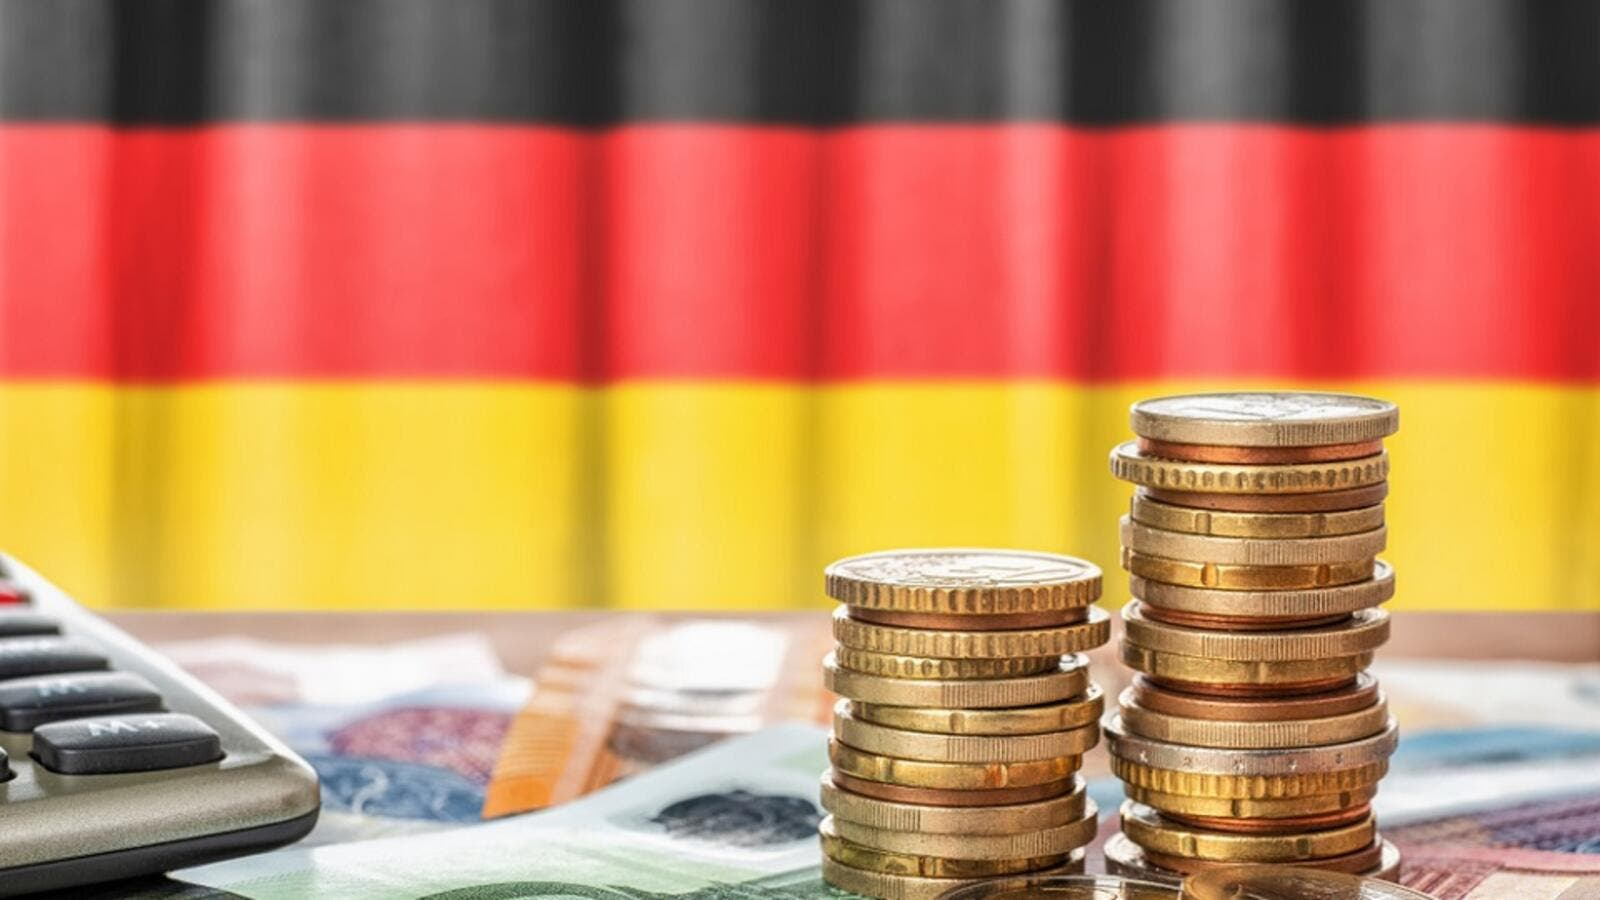 Germany is facing pressure at home and abroad to ditch its pledge to target balanced budgets and instead boost investment by taking on new debt.